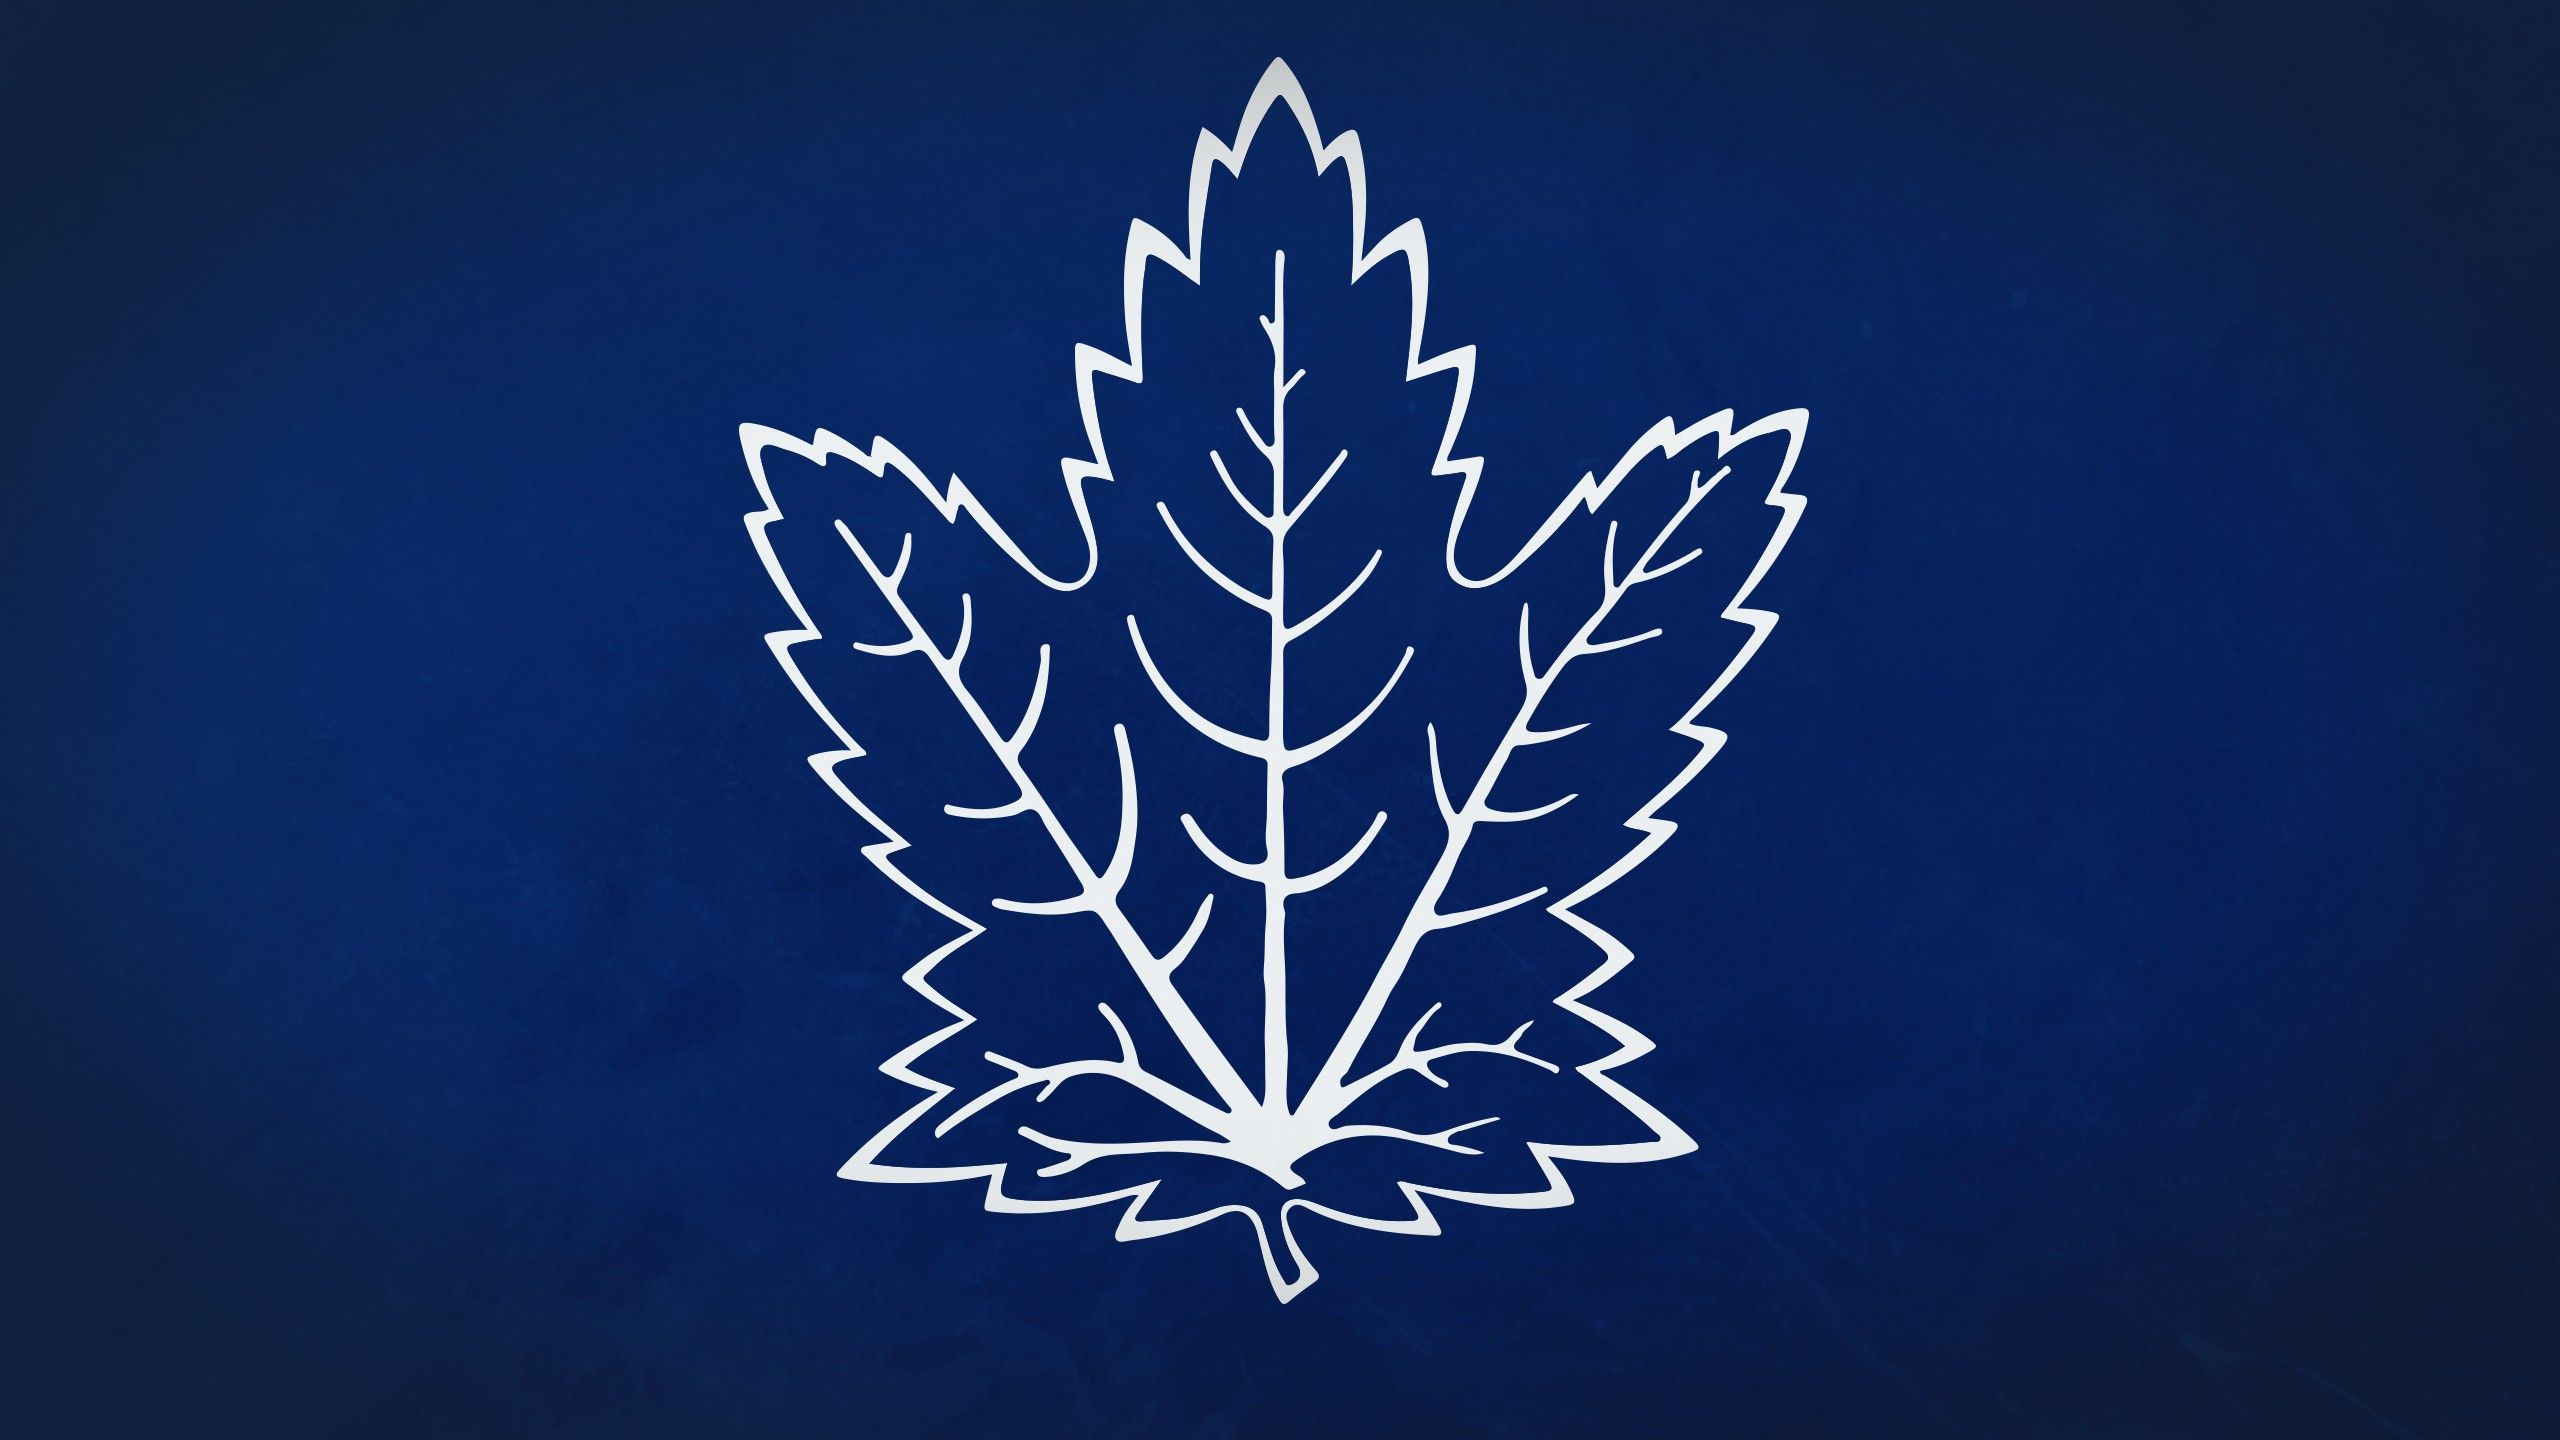 10 Toronto Maple Leafs Hd Wallpapers Backgrounds Wallpaper Abyss Maple Leafs Wallpaper Wallpaper Toronto Maple Leafs